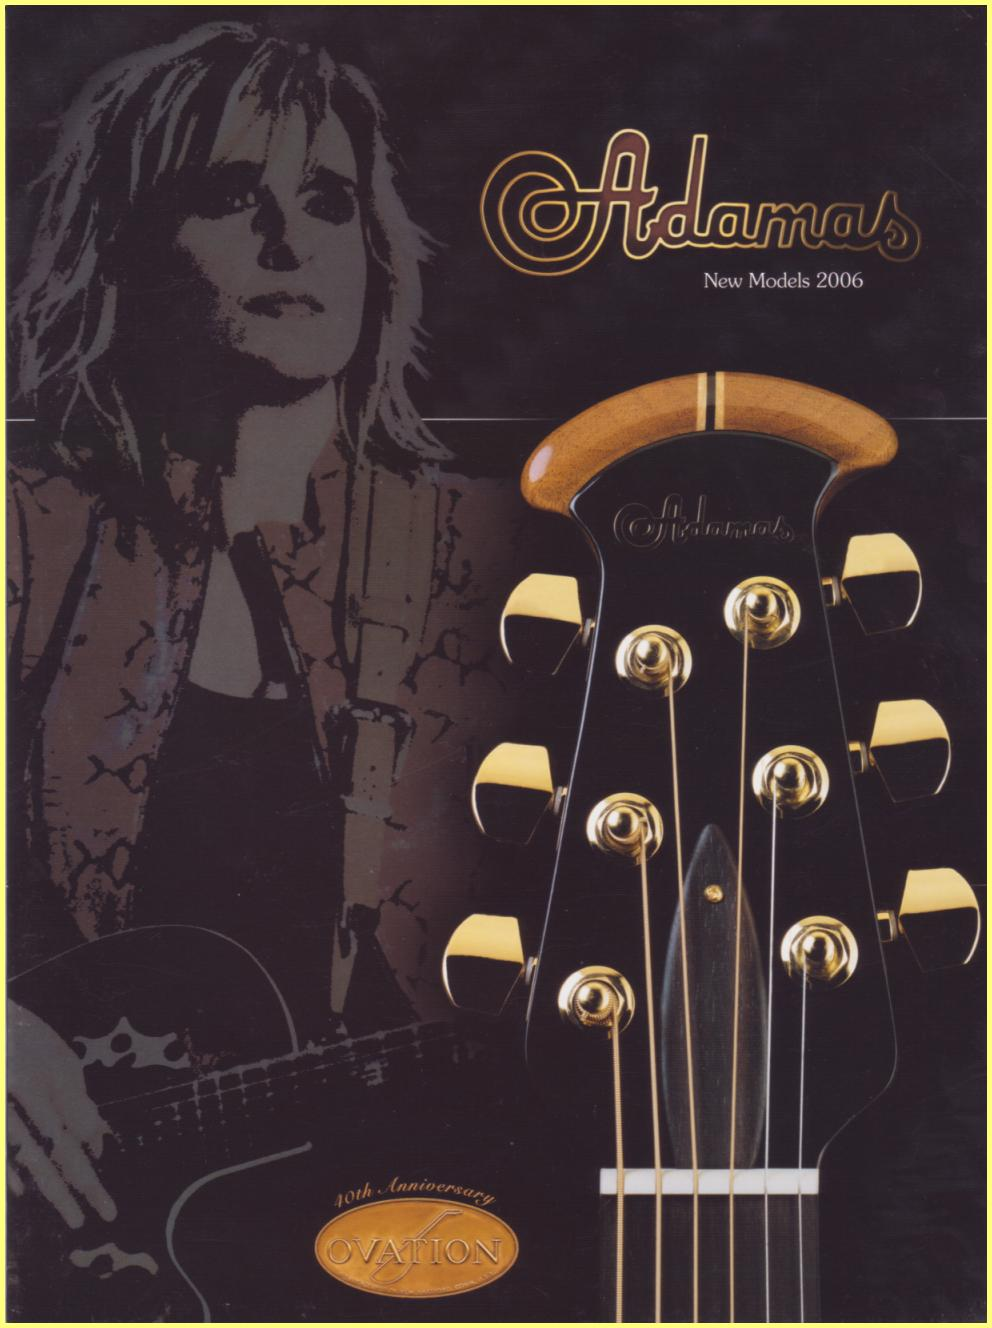 Adamas 2006 new models brochure